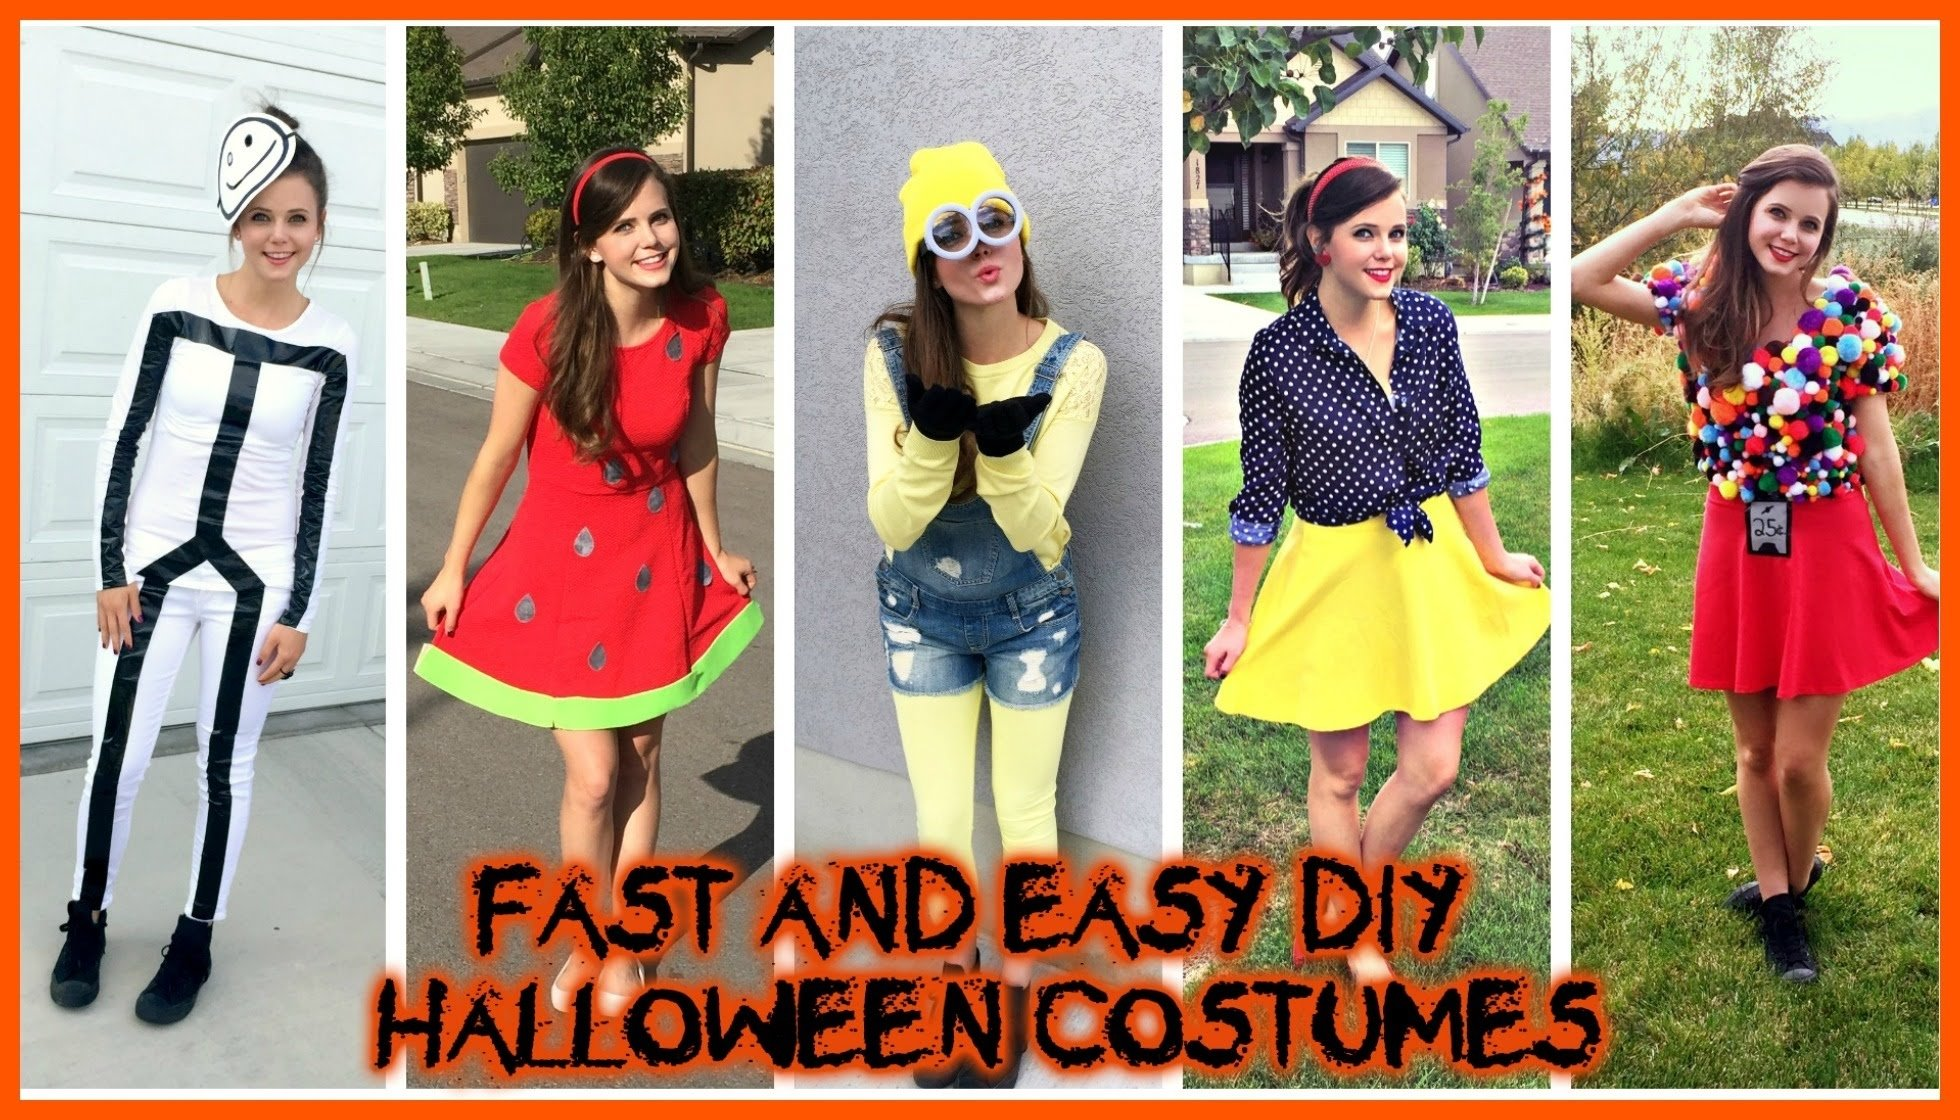 10 Great Really Easy Halloween Costume Ideas diy halloween costumes super easy cheap last minute ideas tiffany 7 2021